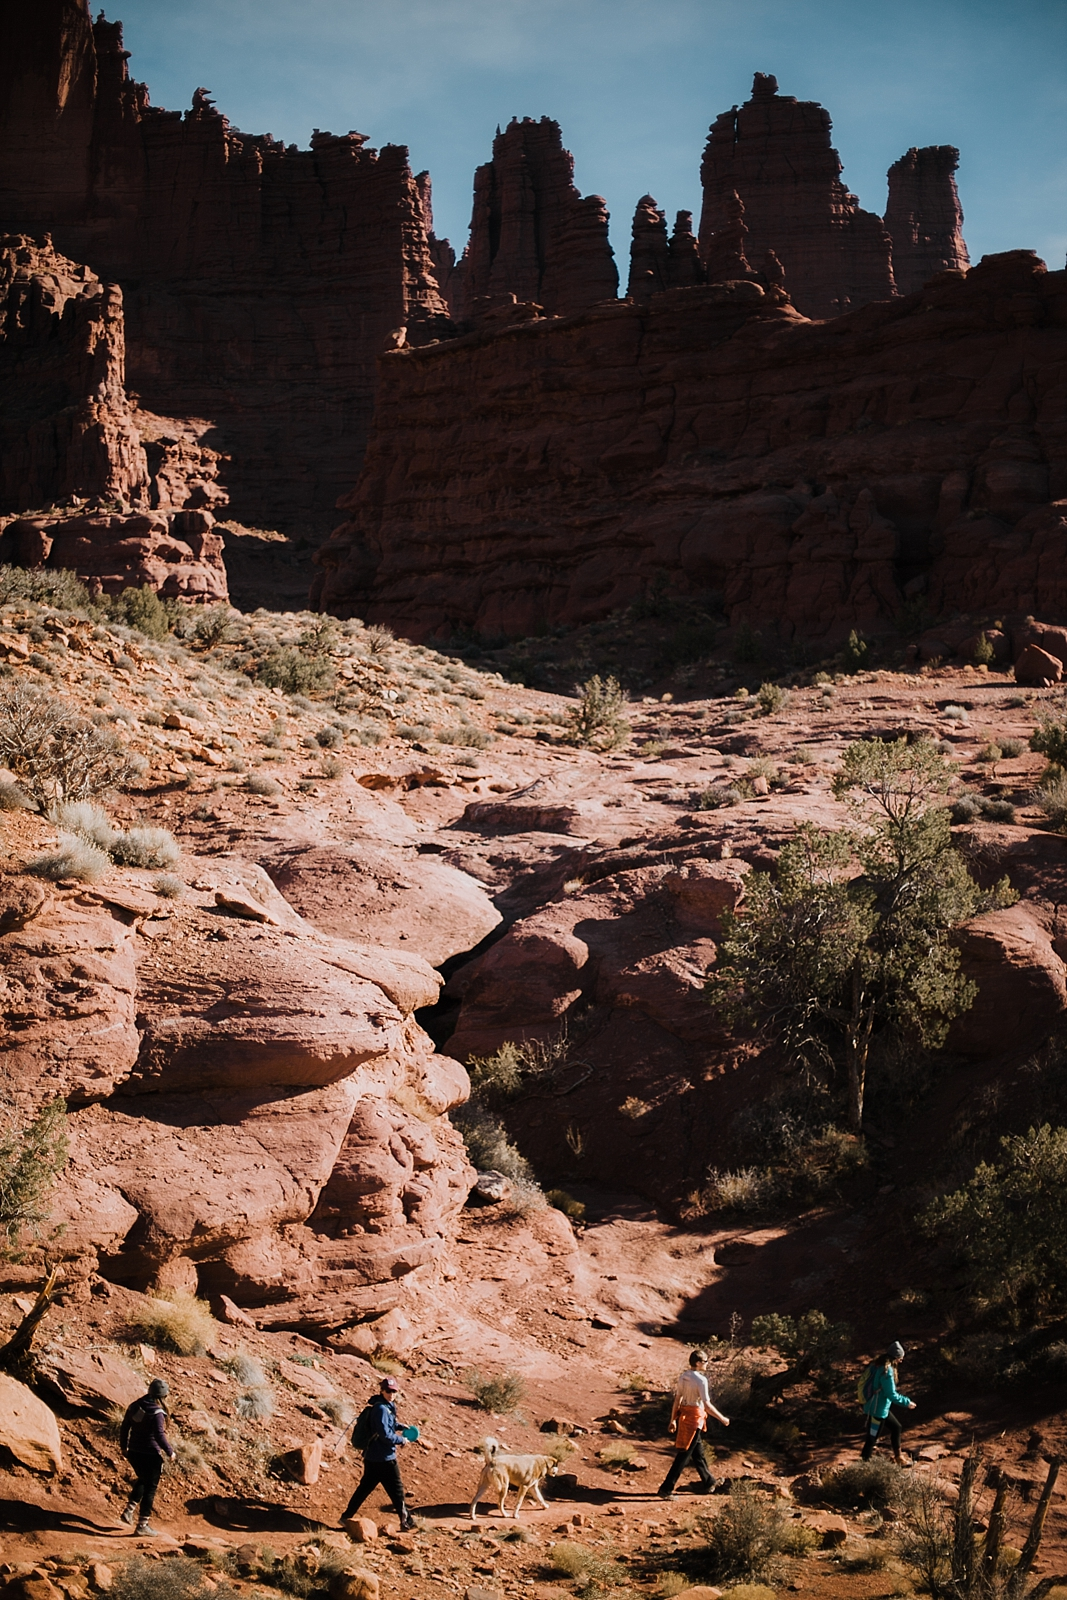 moab-photographer-camp-couples-adventure-session_0009.jpg